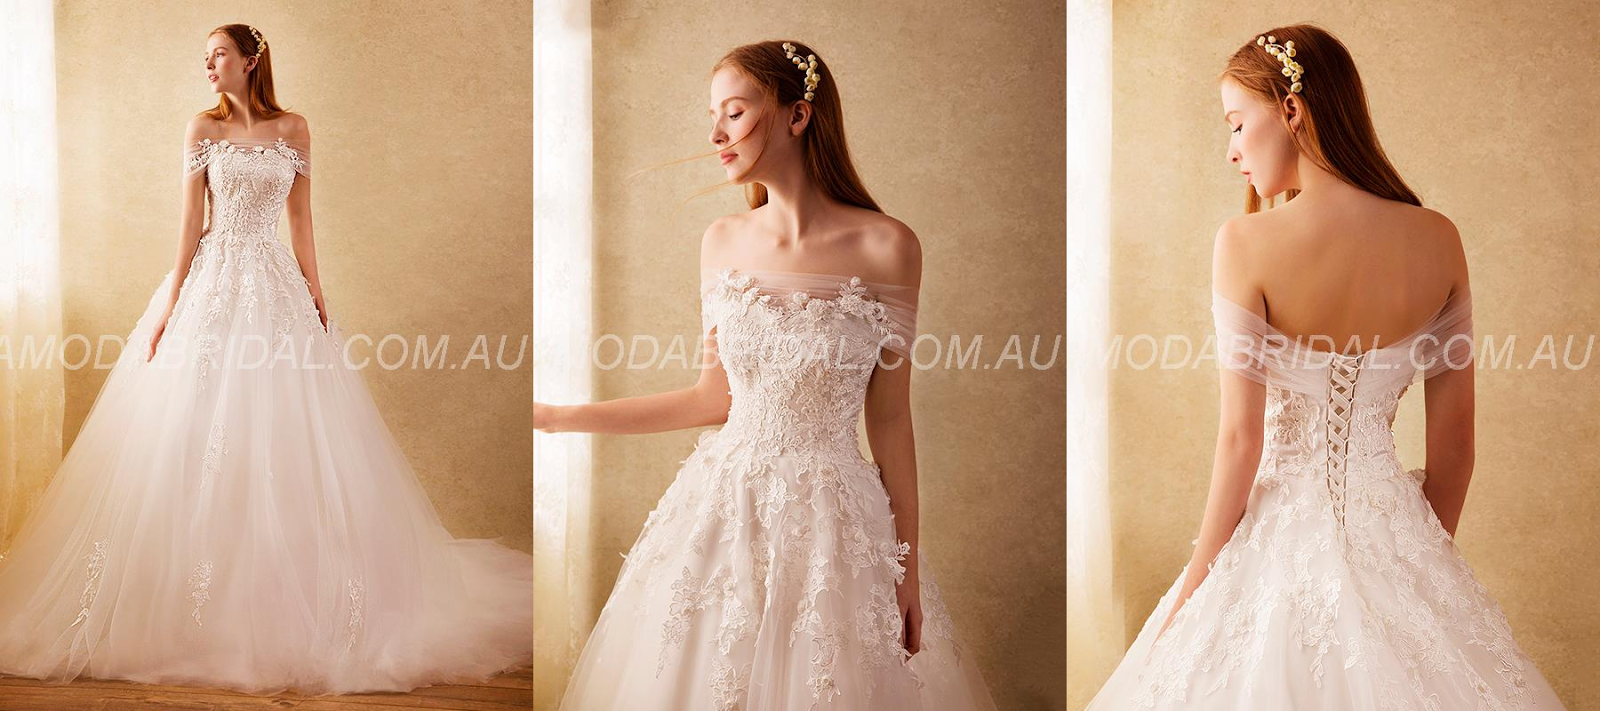 Court Lace-up Appliques Floor-Length Glamorous & Dramatic Beading Church Elegant & Luxurious Wedding Dress